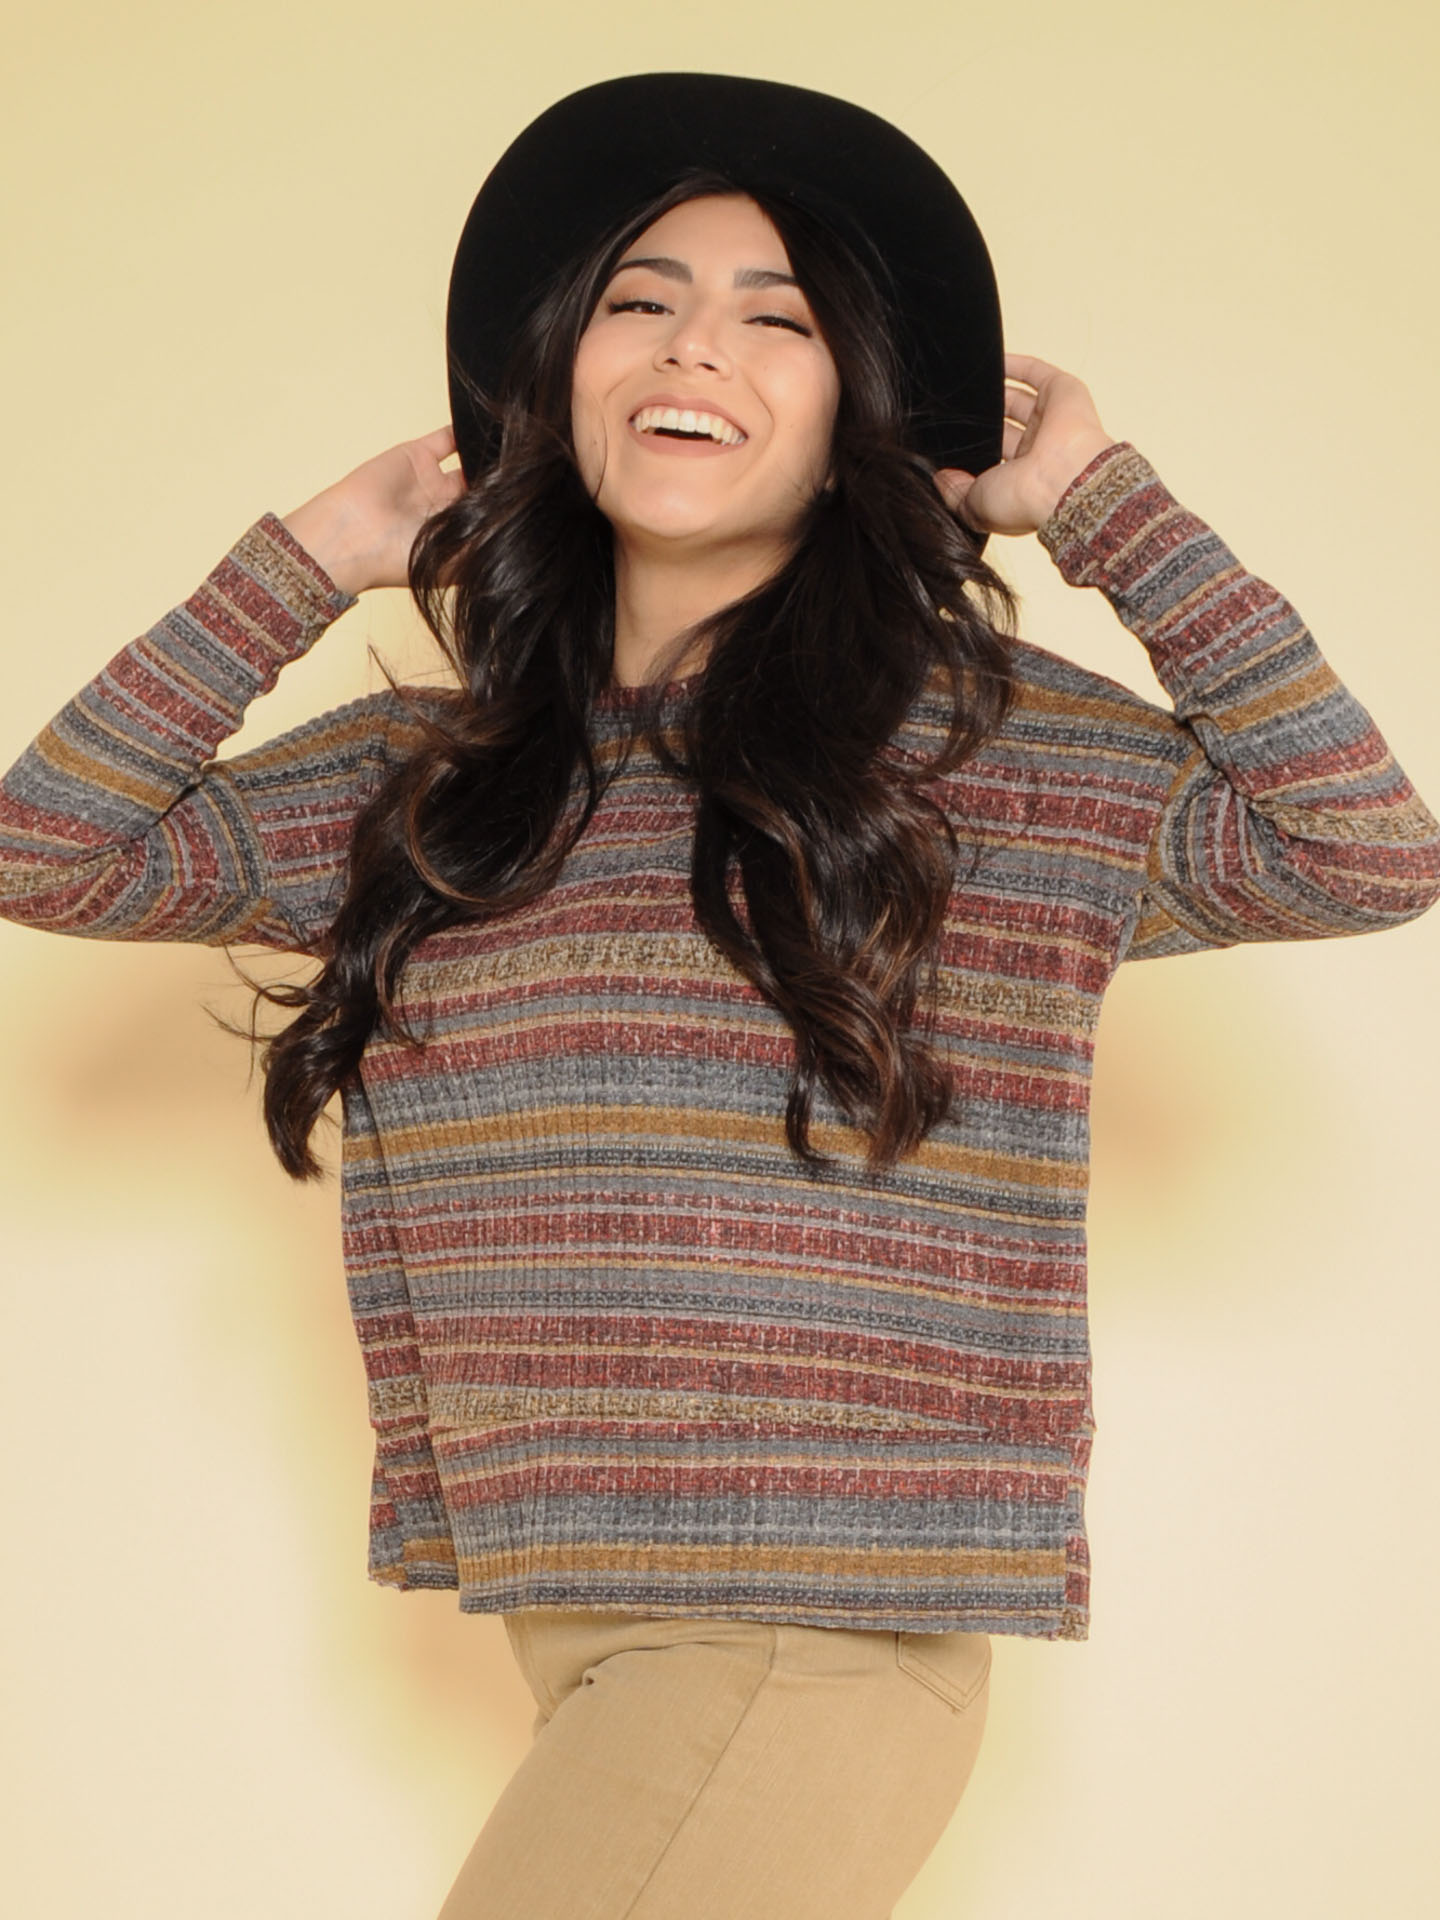 Hadley Striped Top 70's Inspired Long Sleeve Front